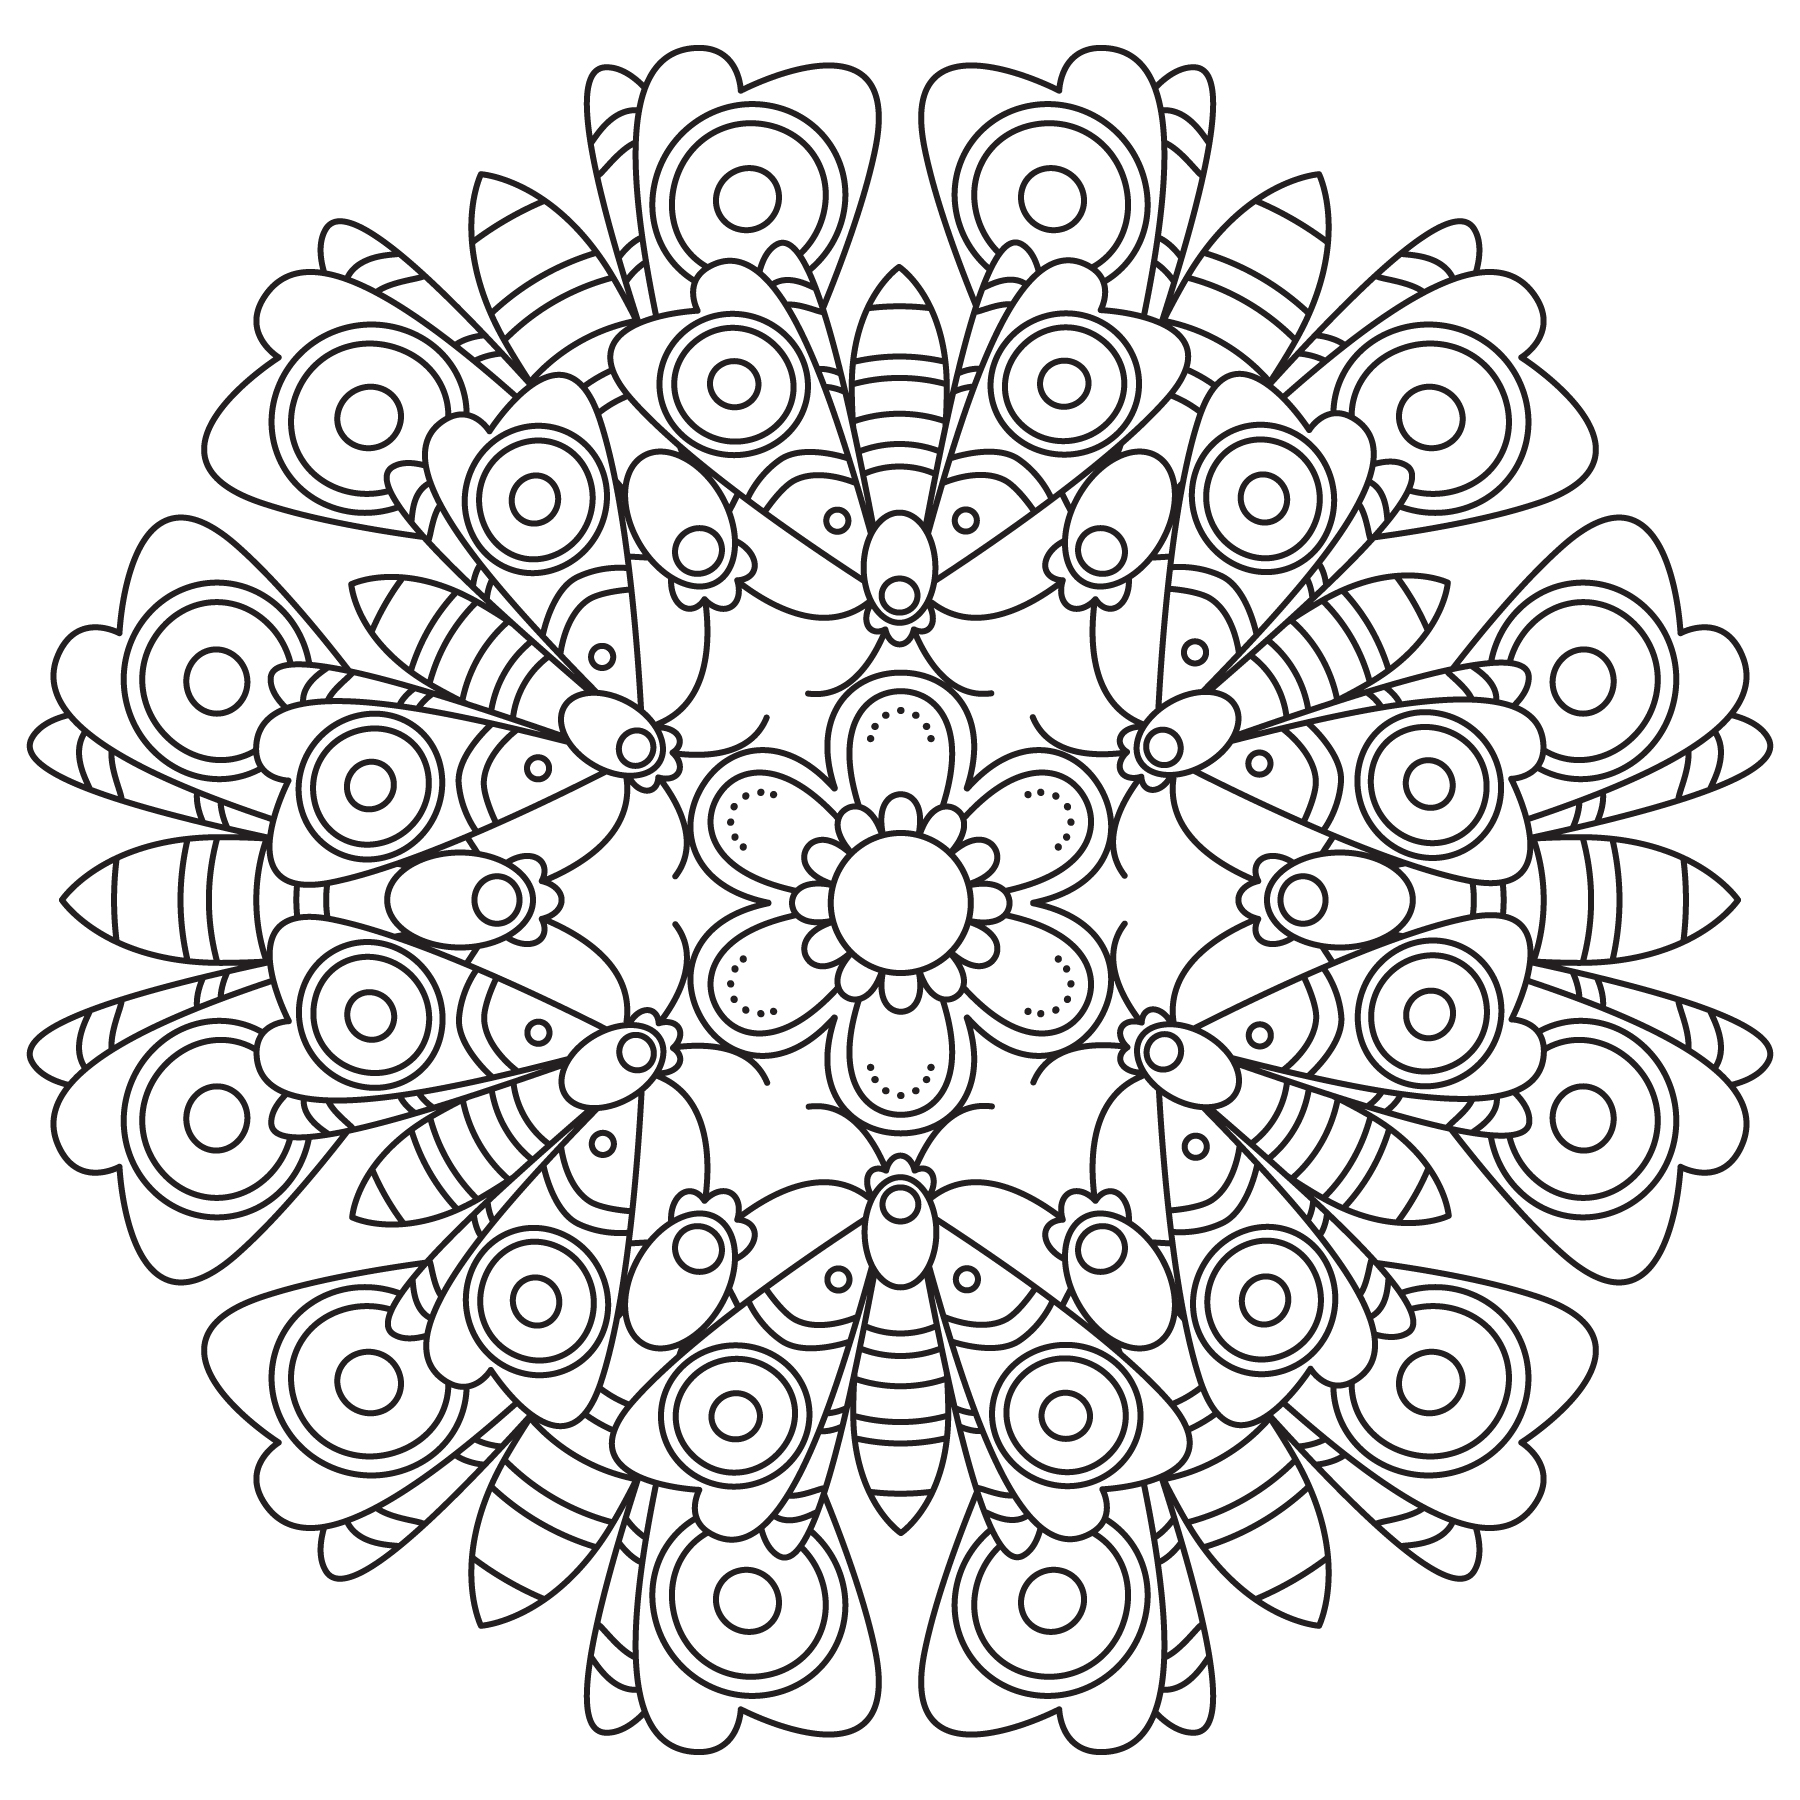 Mandala Monday 60 Free Download To Colour In (2)